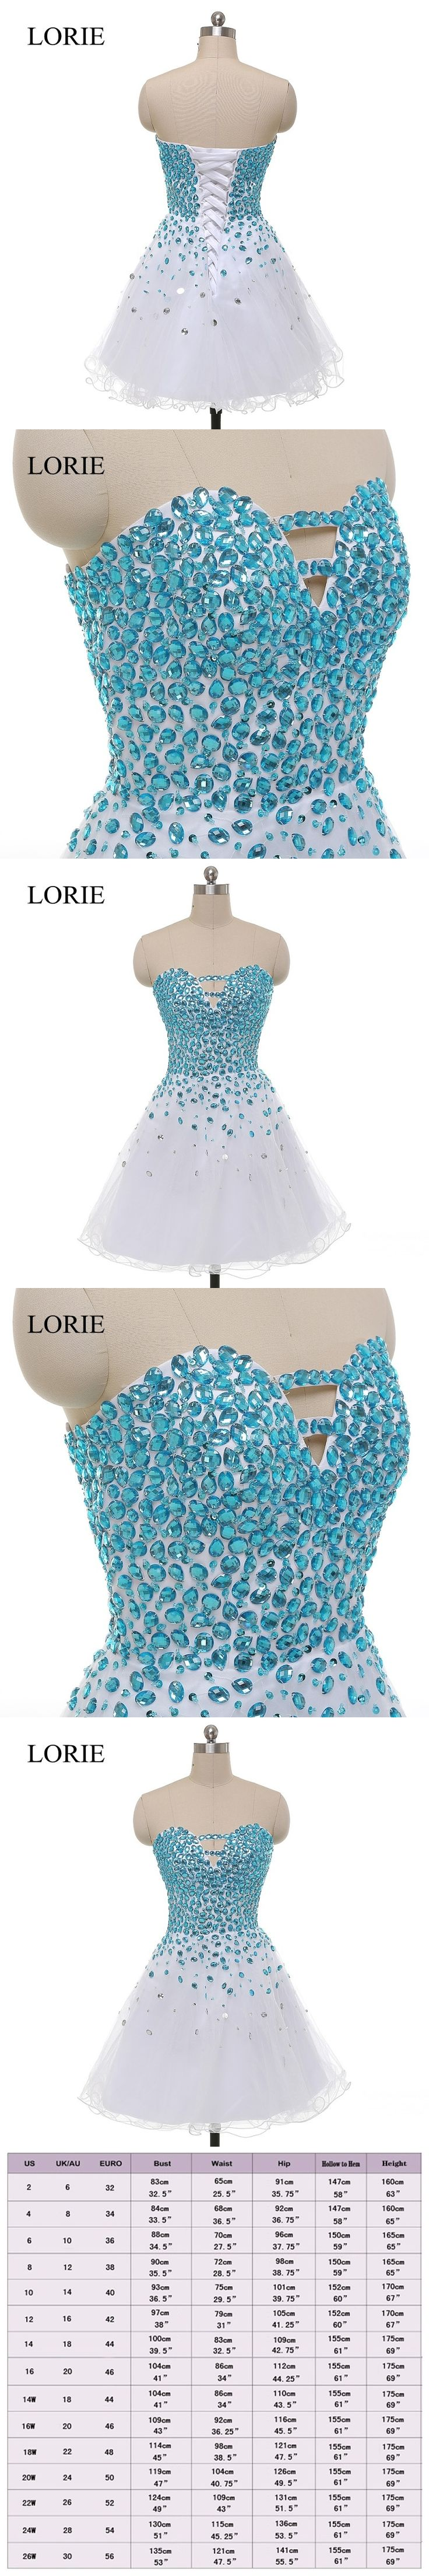 Blue And White Short Prom Dresses 2016 Sweetheart Off Shoulder Crystal Beaded Homecoming Graduation Party dresses